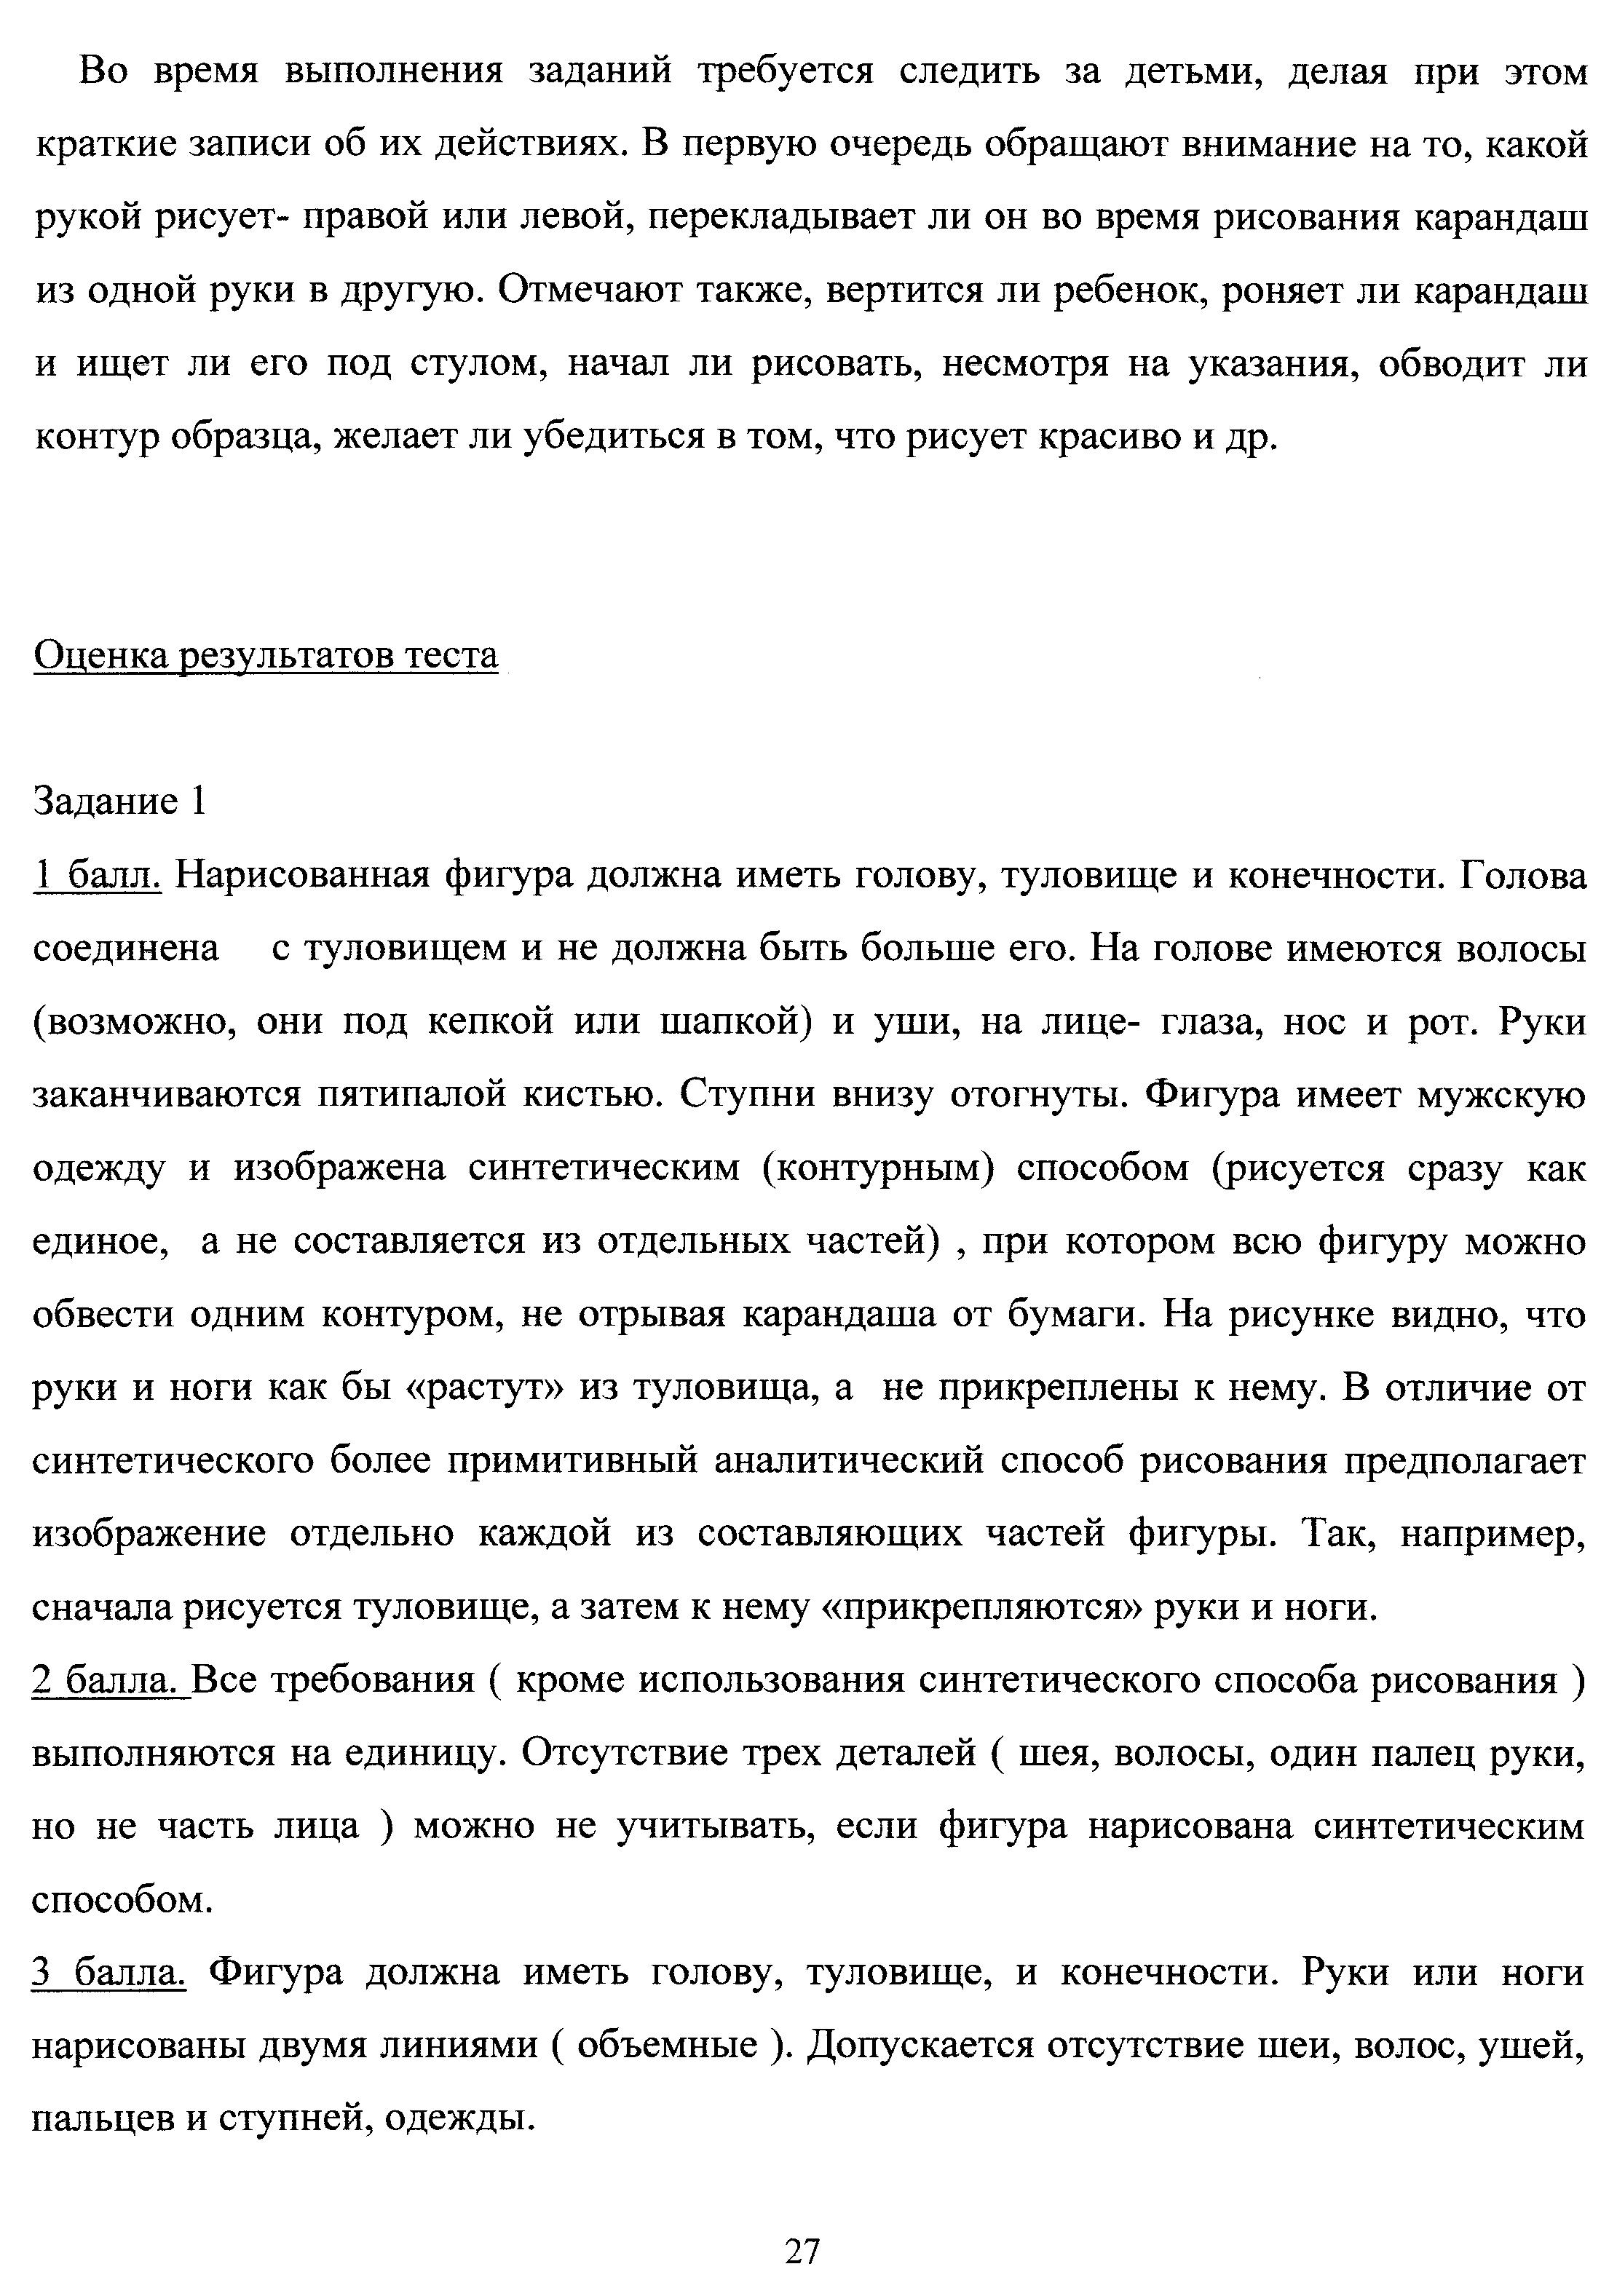 C:\Users\ЛАРИСА\Documents\Scanned Documents\Рисунок (131).jpg